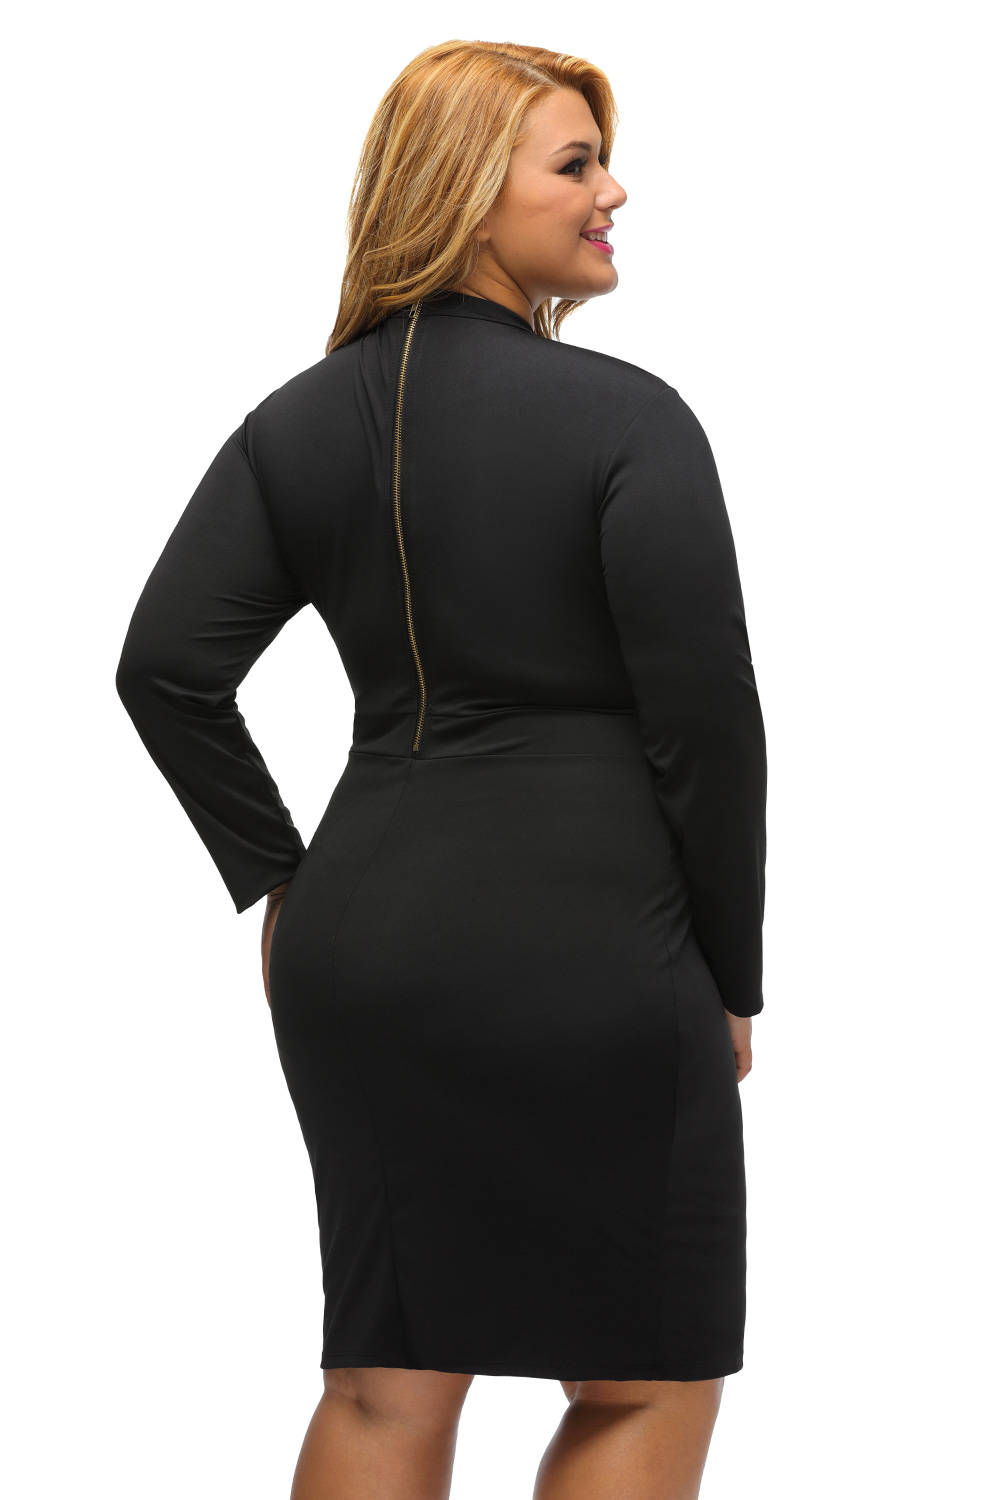 Cute maternity sleeves dresses long bodycon with plus size neckline shapes